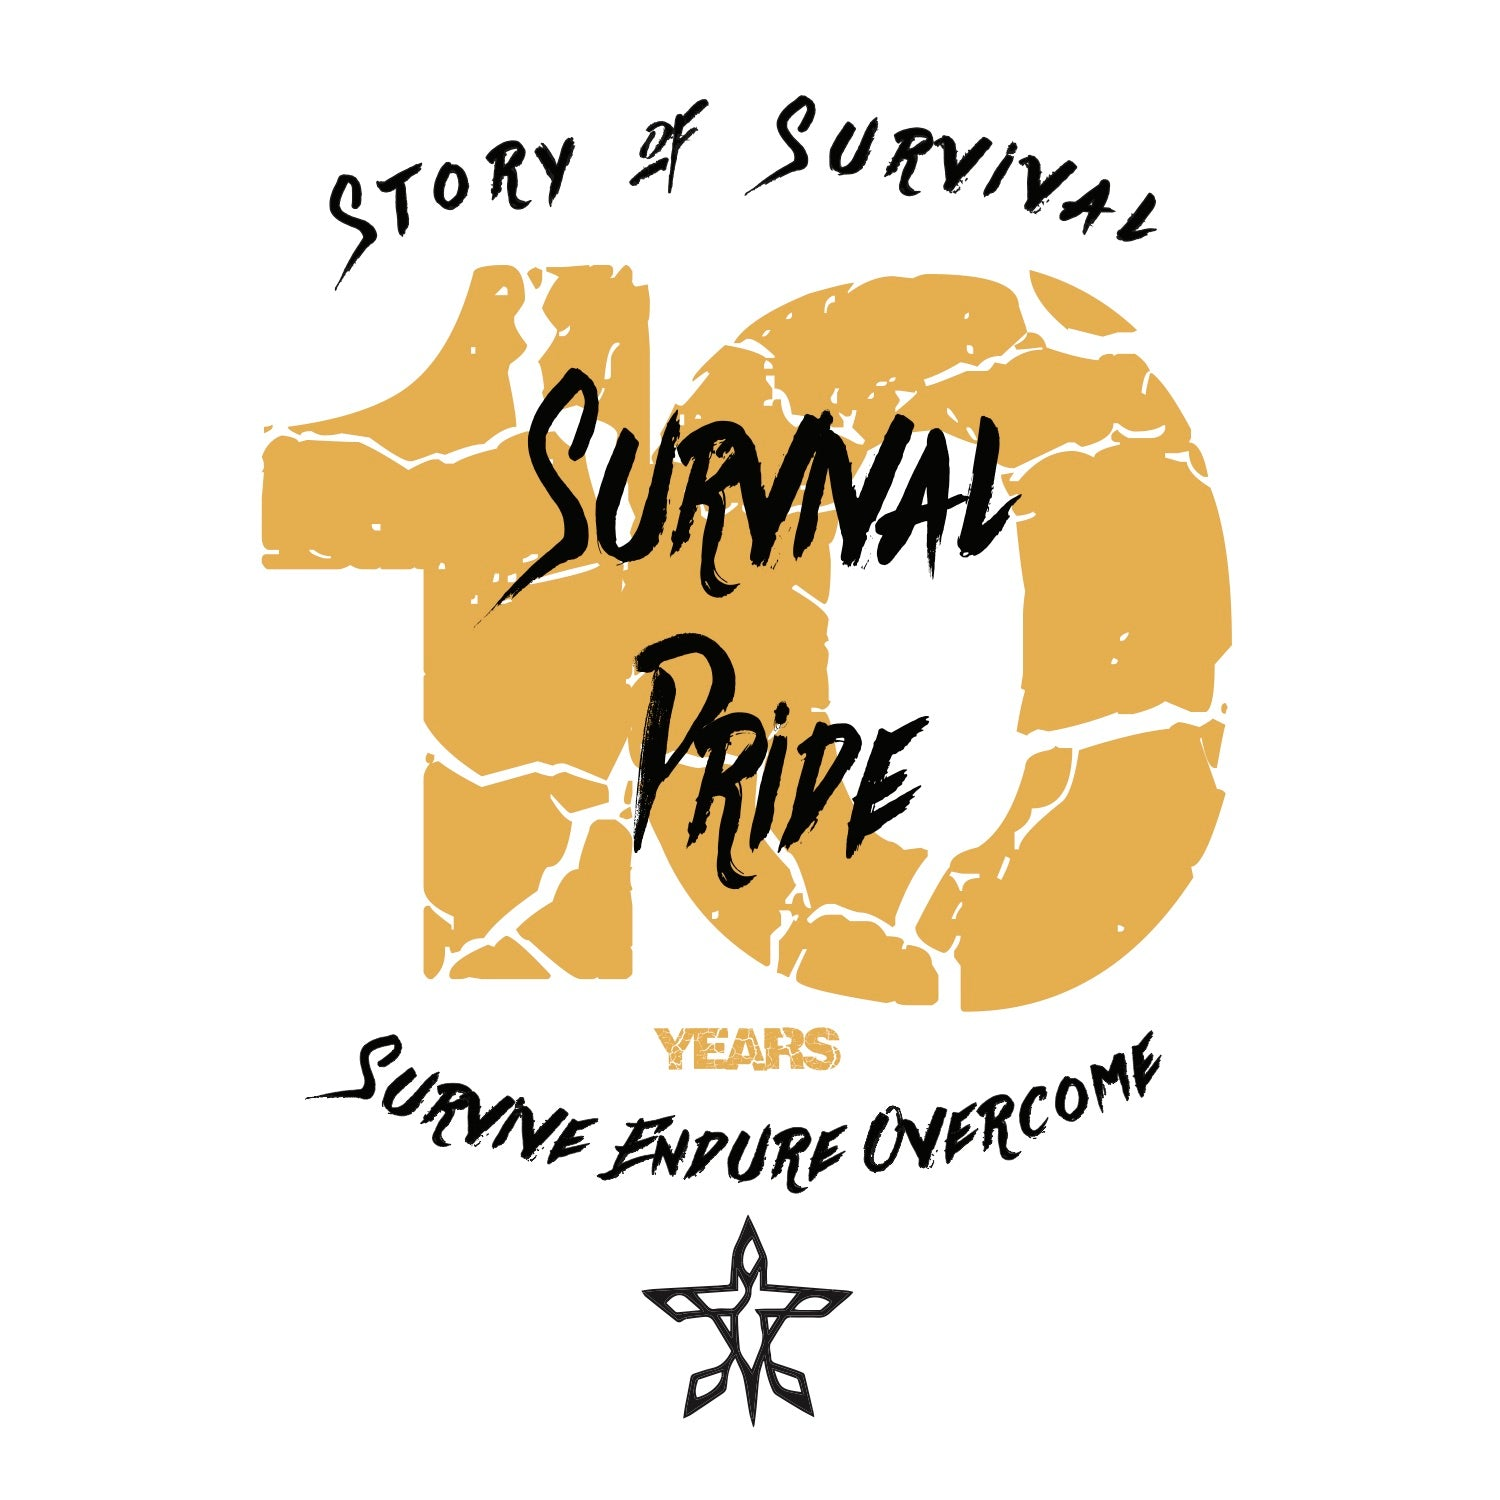 Story of Survival (10th Anniversary of Survival Pride) Collection